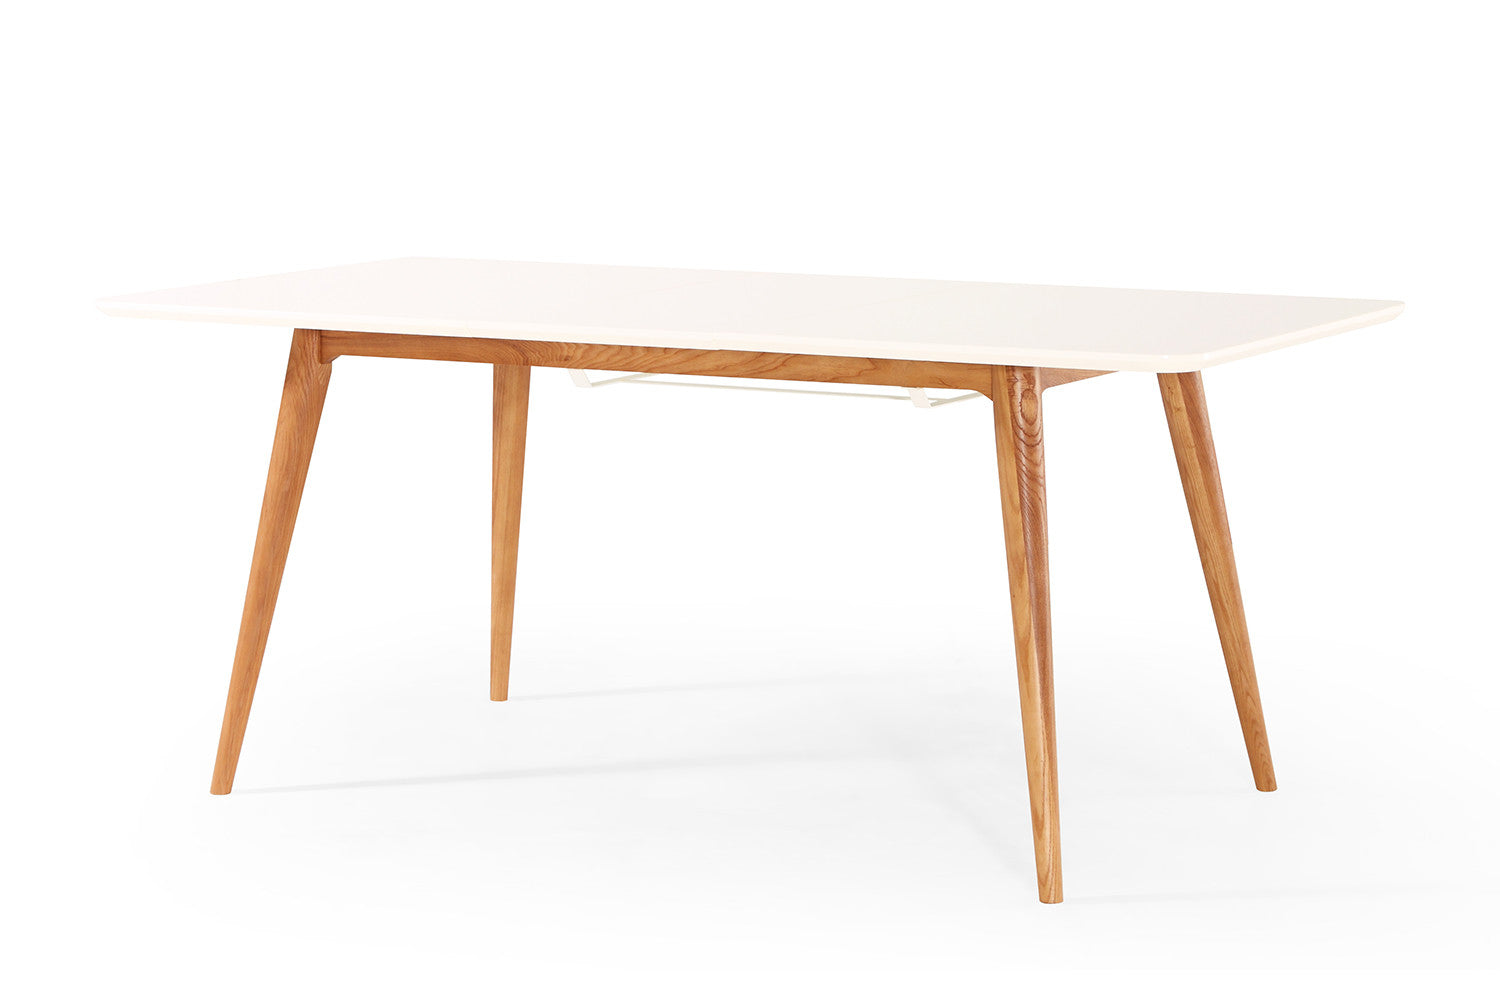 Table salle a manger scandinave extensible for Table a manger scandinave